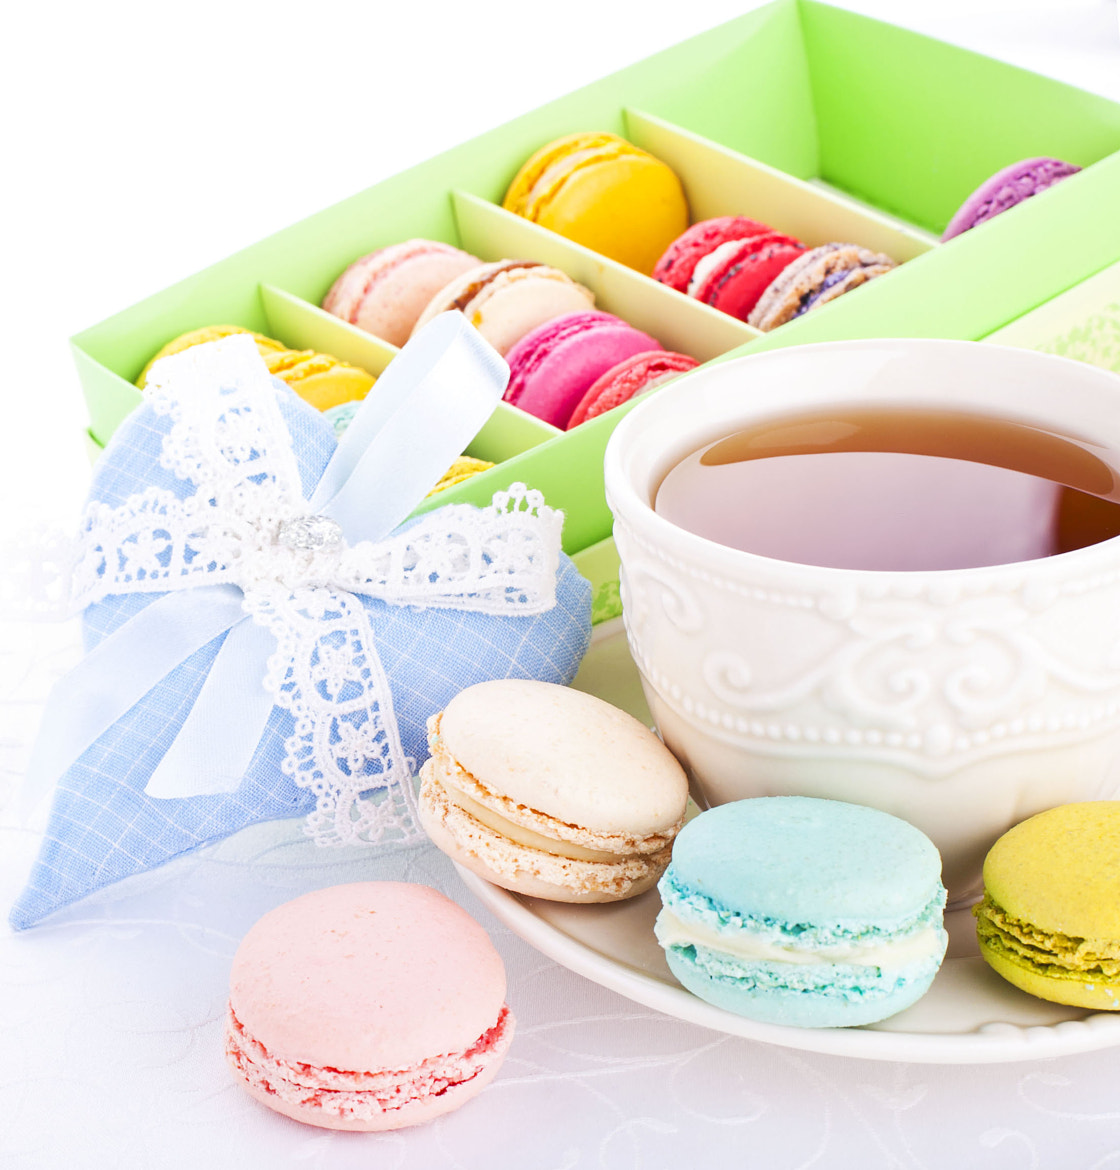 Photograph  colorful french macarons by Ilona Bardyshava on 500px